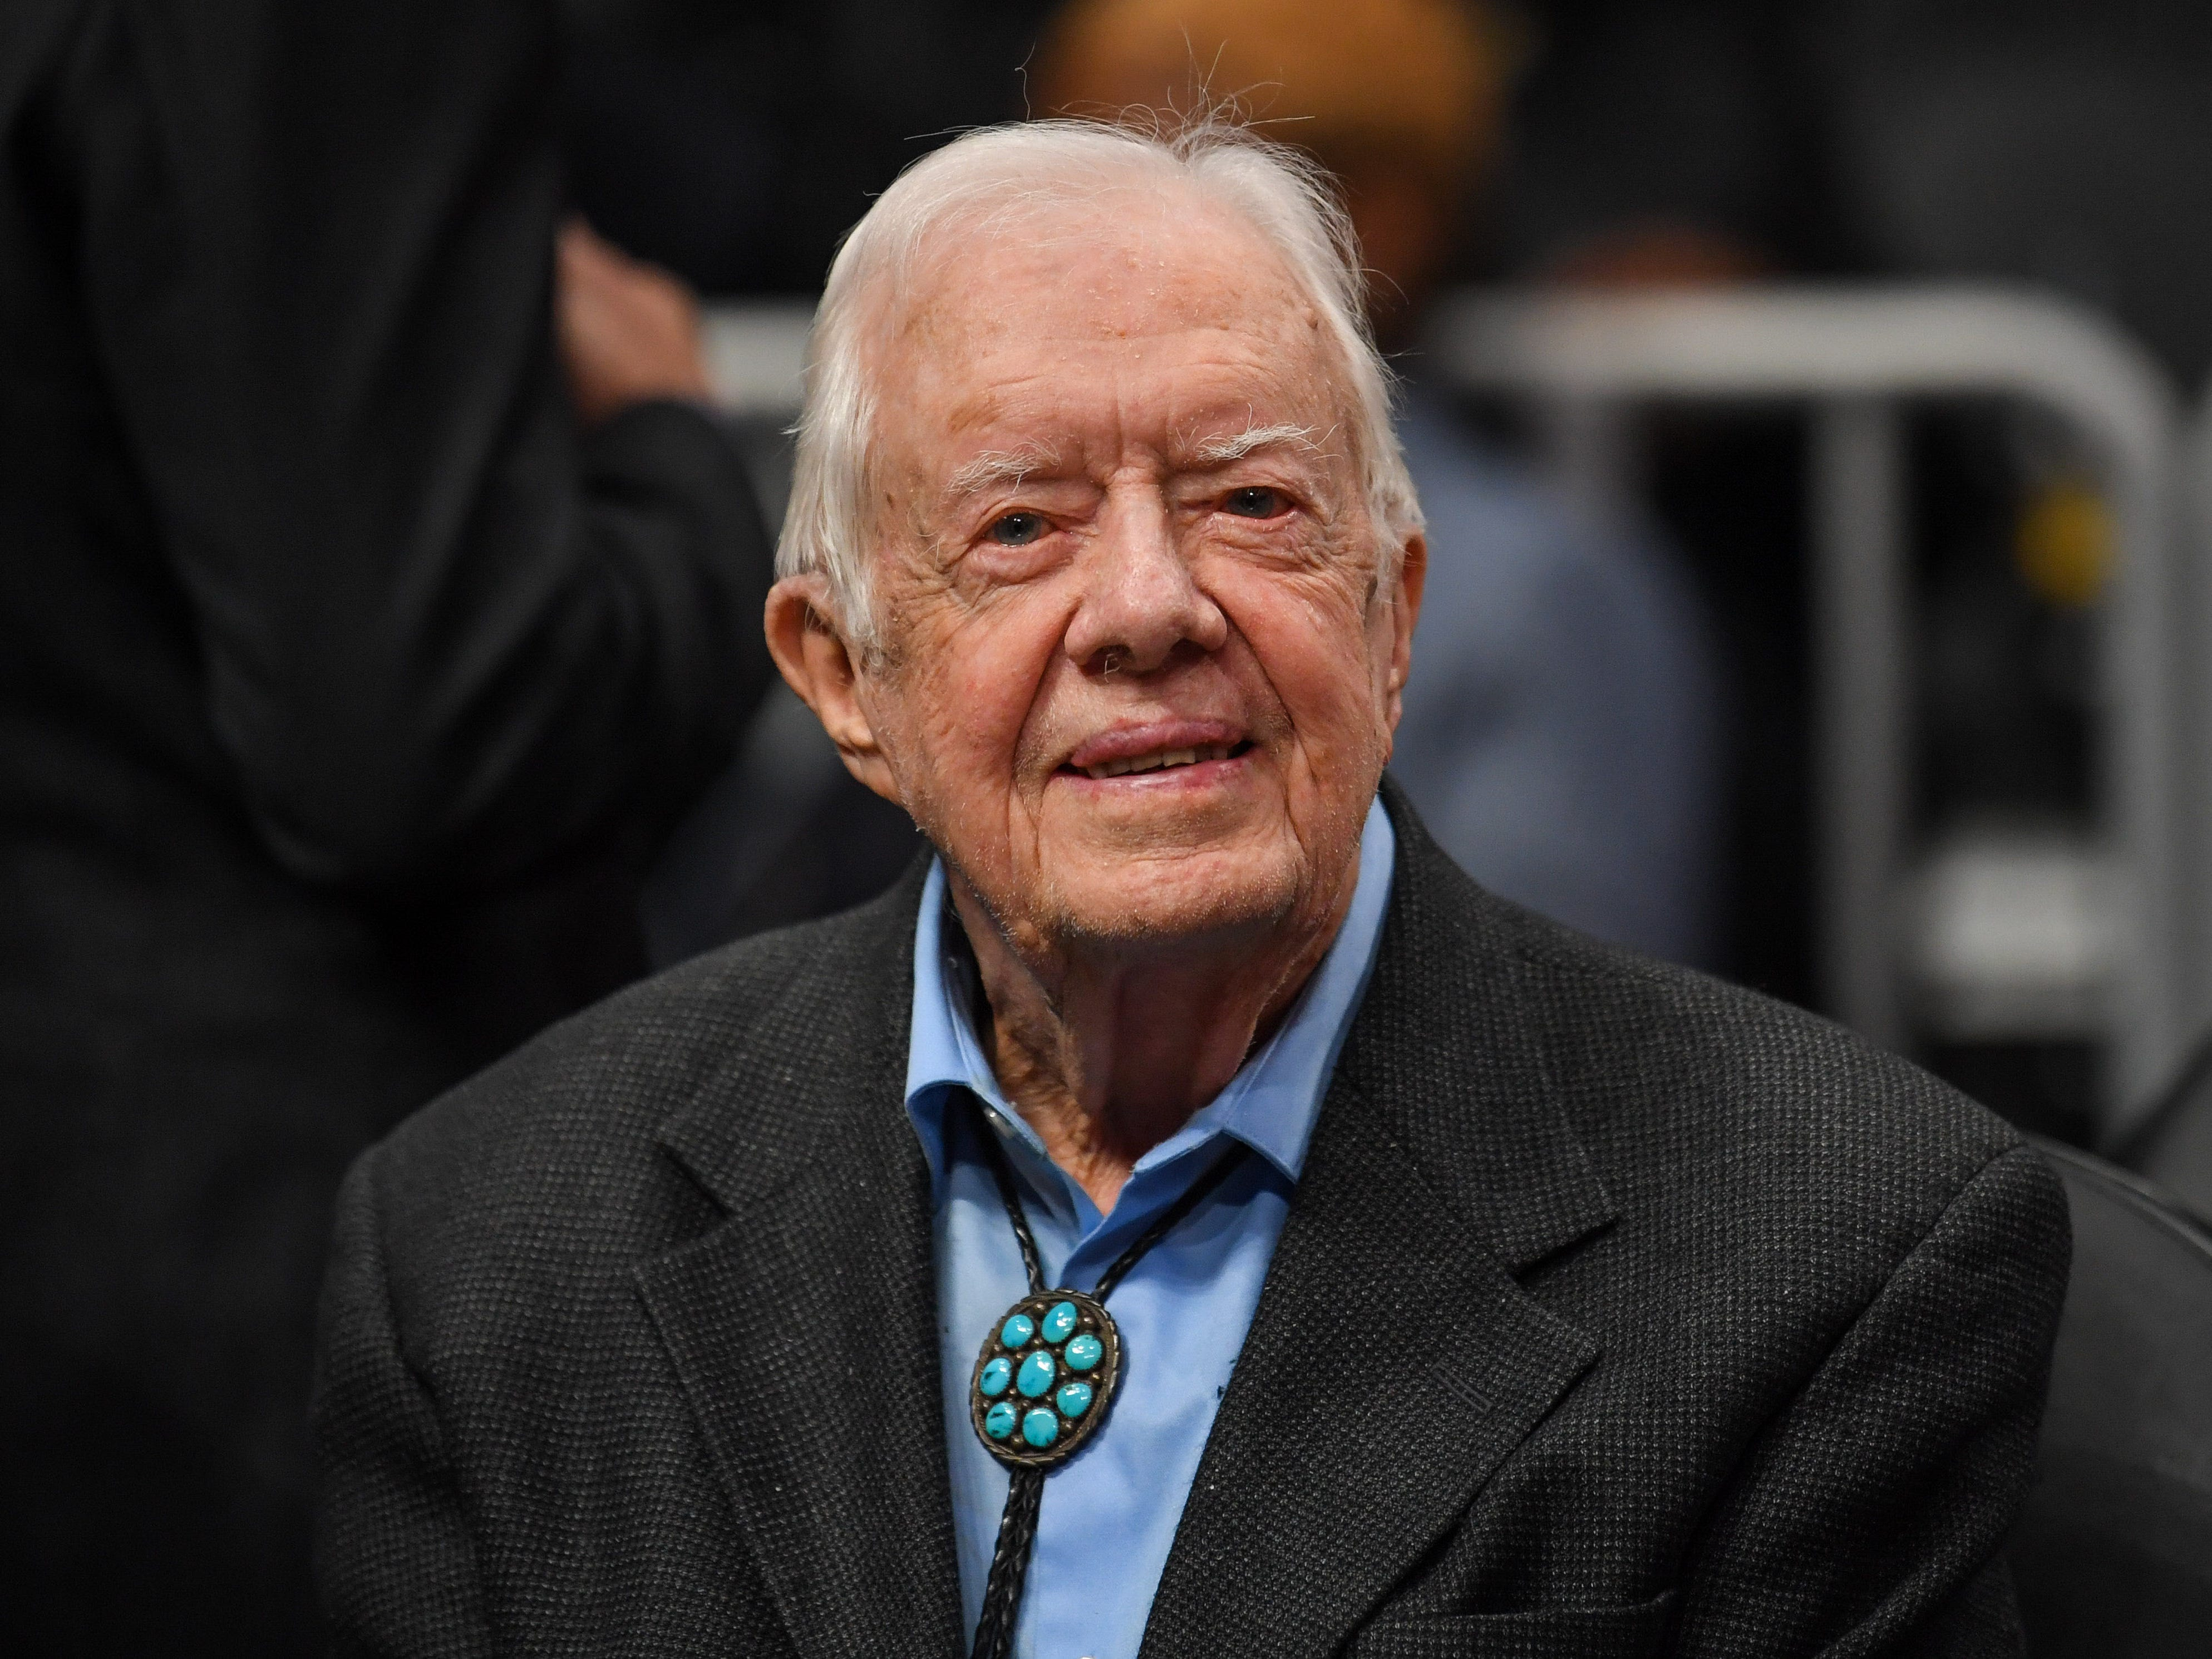 Jimmy Carter becomes the oldest living former US president in history